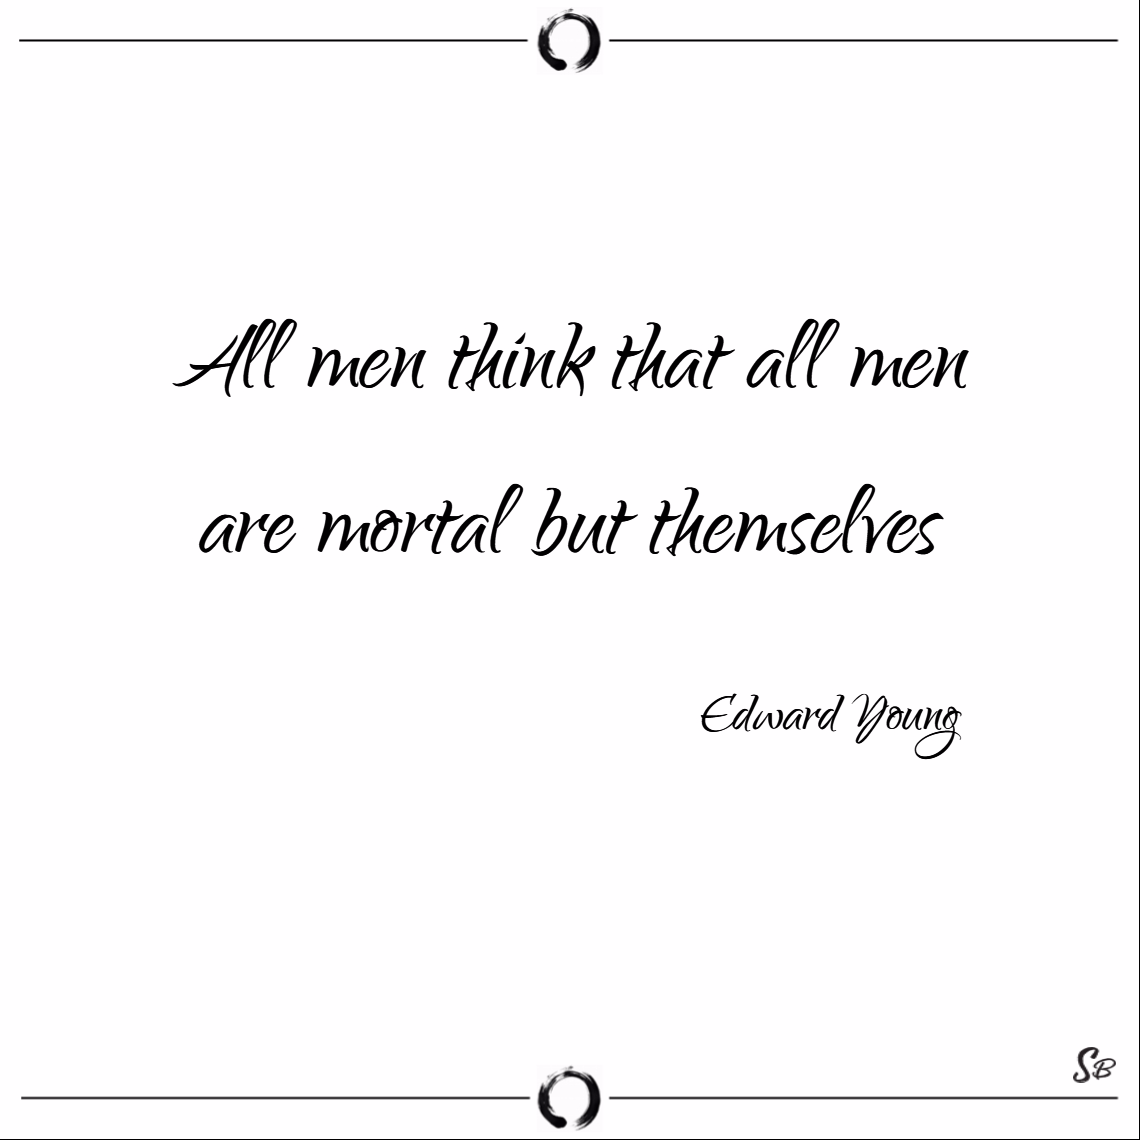 All men think that all men are mortal but themselves. – edward young